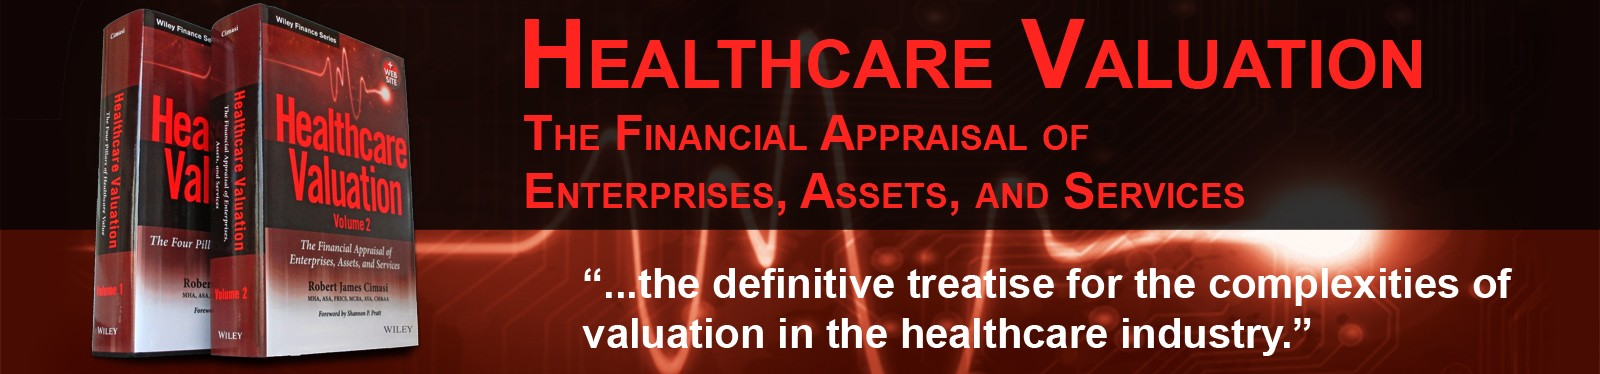 4 Healthcare Valuation Cimasi 1600 374